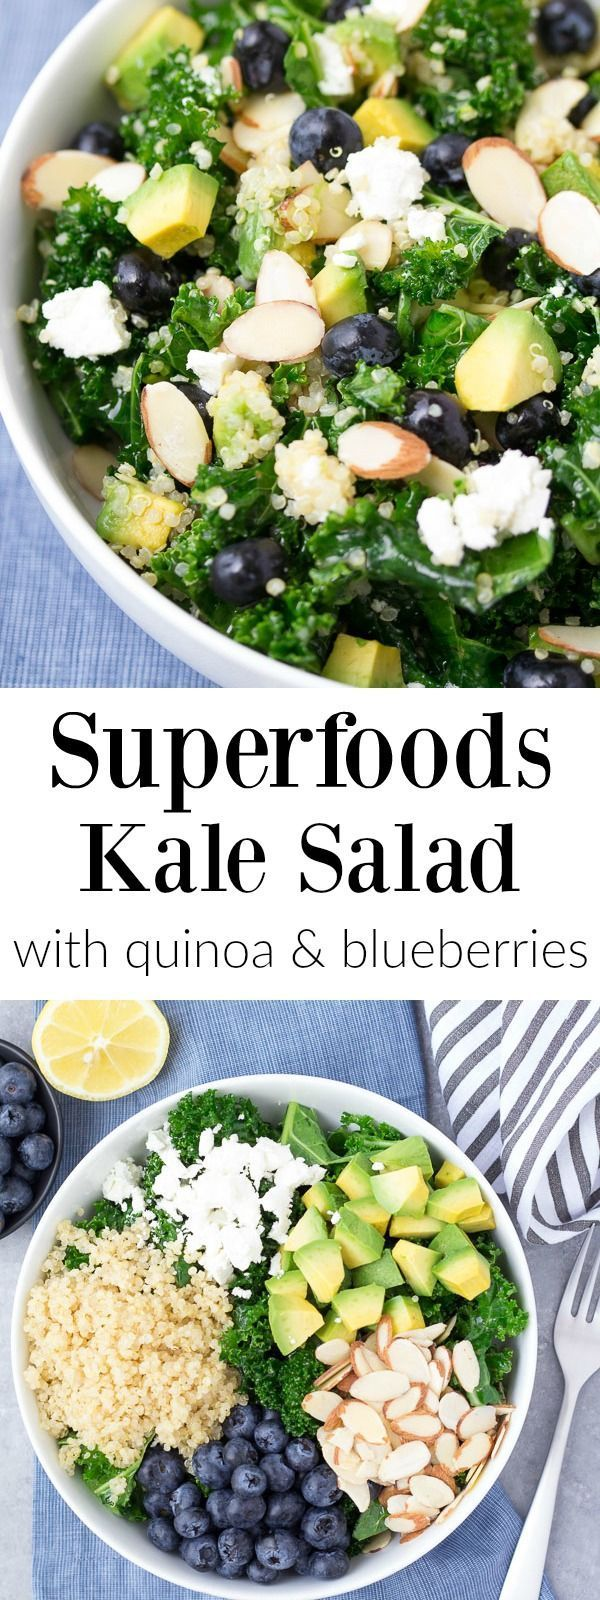 This Kale Superfood Salad with Quinoa and Blueberries is loaded with super foods! This healthy salad is make ahead friendly for quick lunches. Goat cheese, avocado, and a honey lemon dressing bring lo